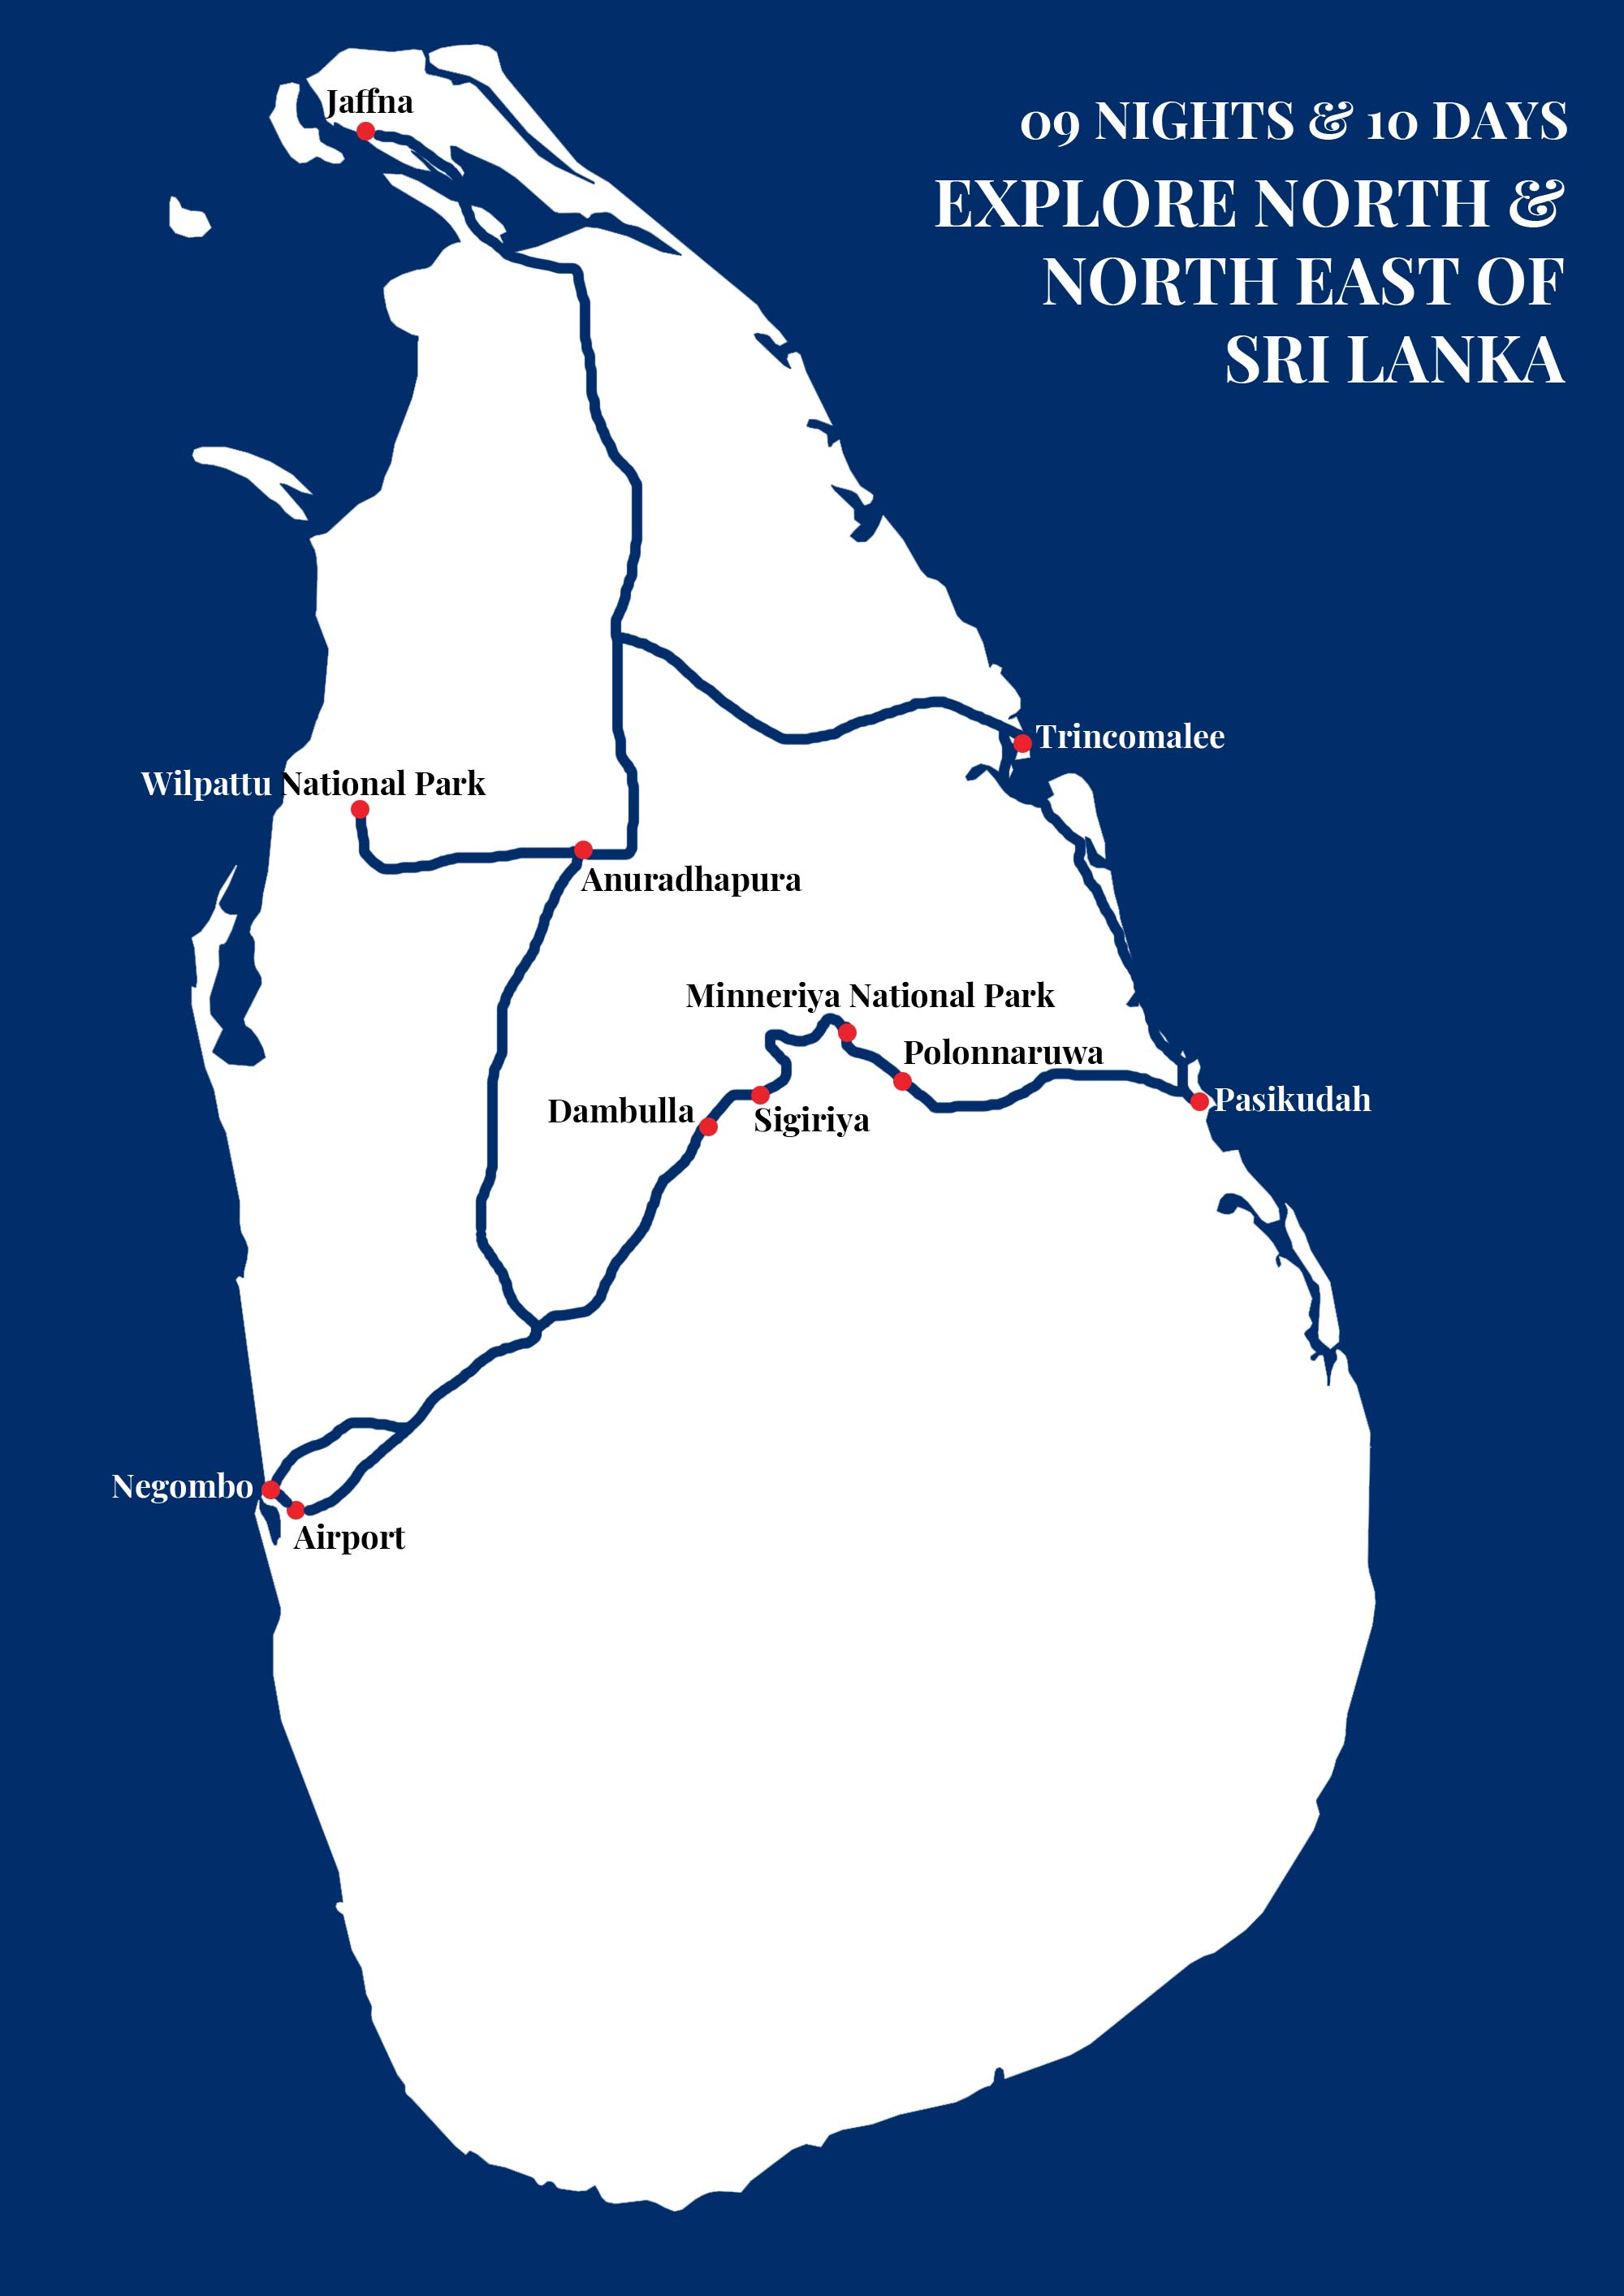 EXPLORE NORTH & NORTH EAST OF SRI LANKA Map